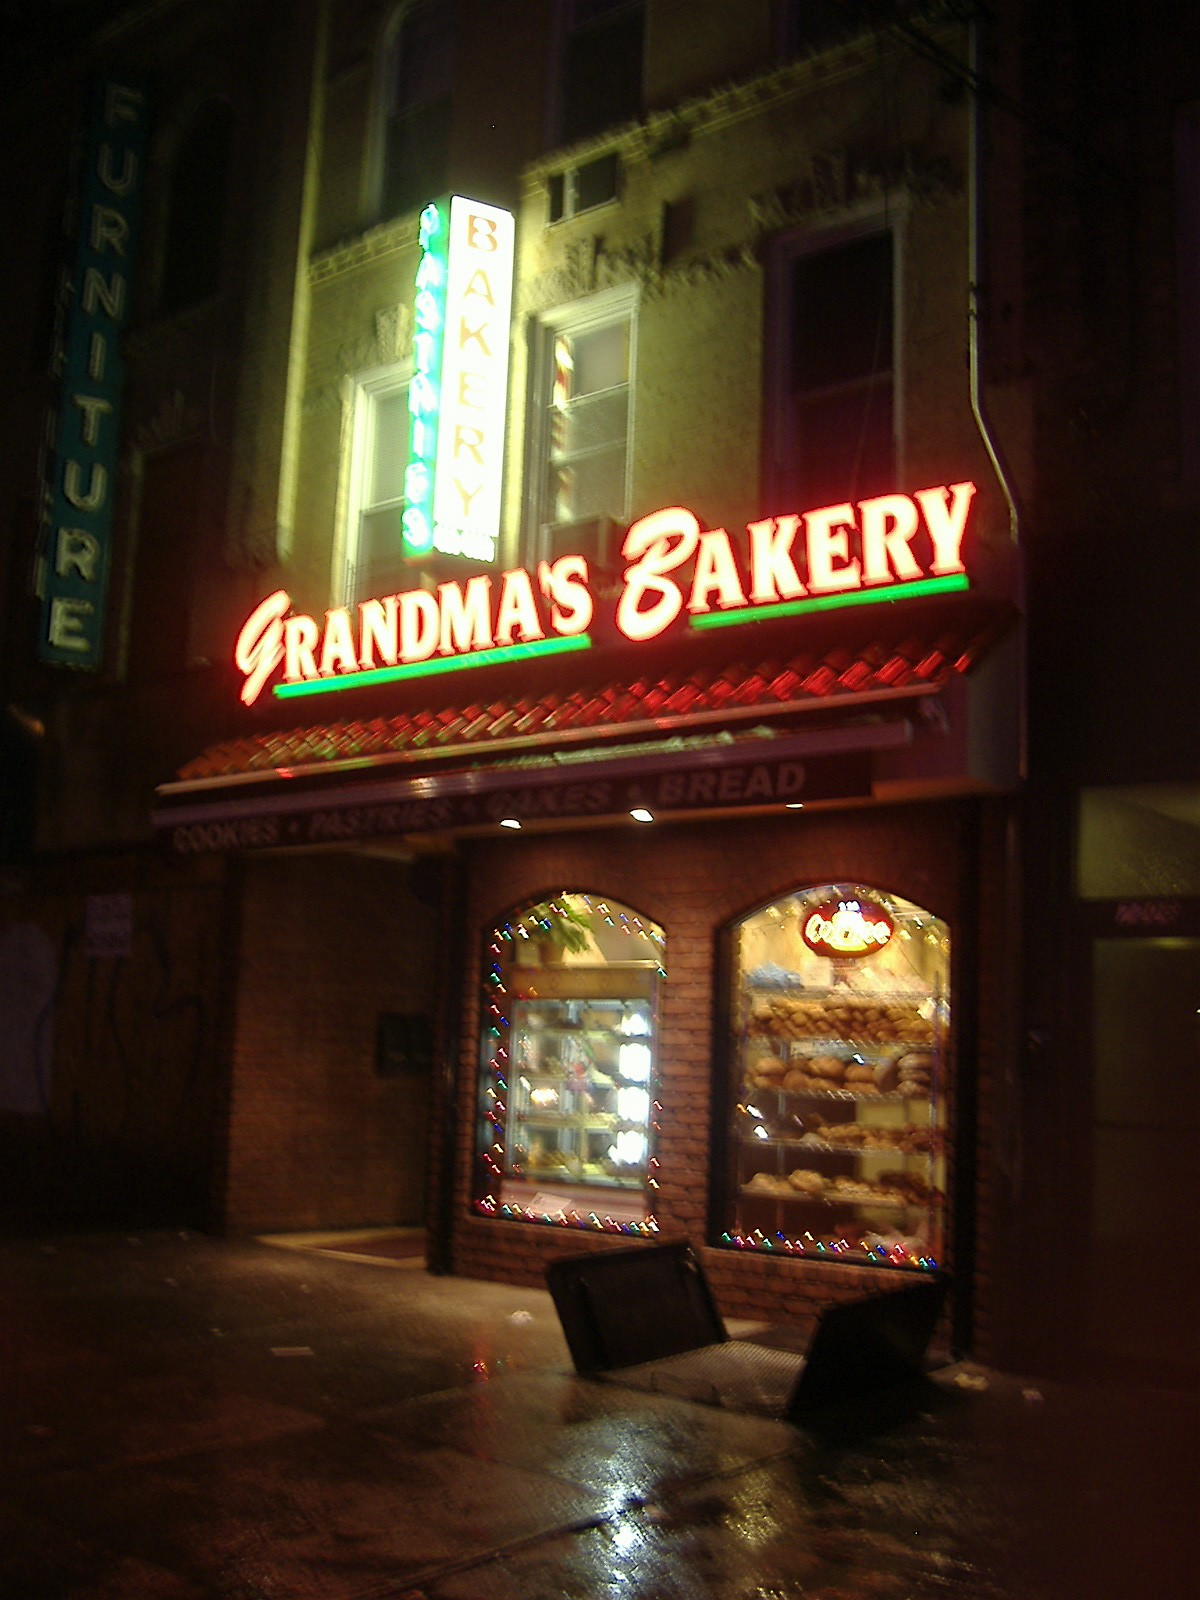 Grandma's is particularly inviting on a rainy night